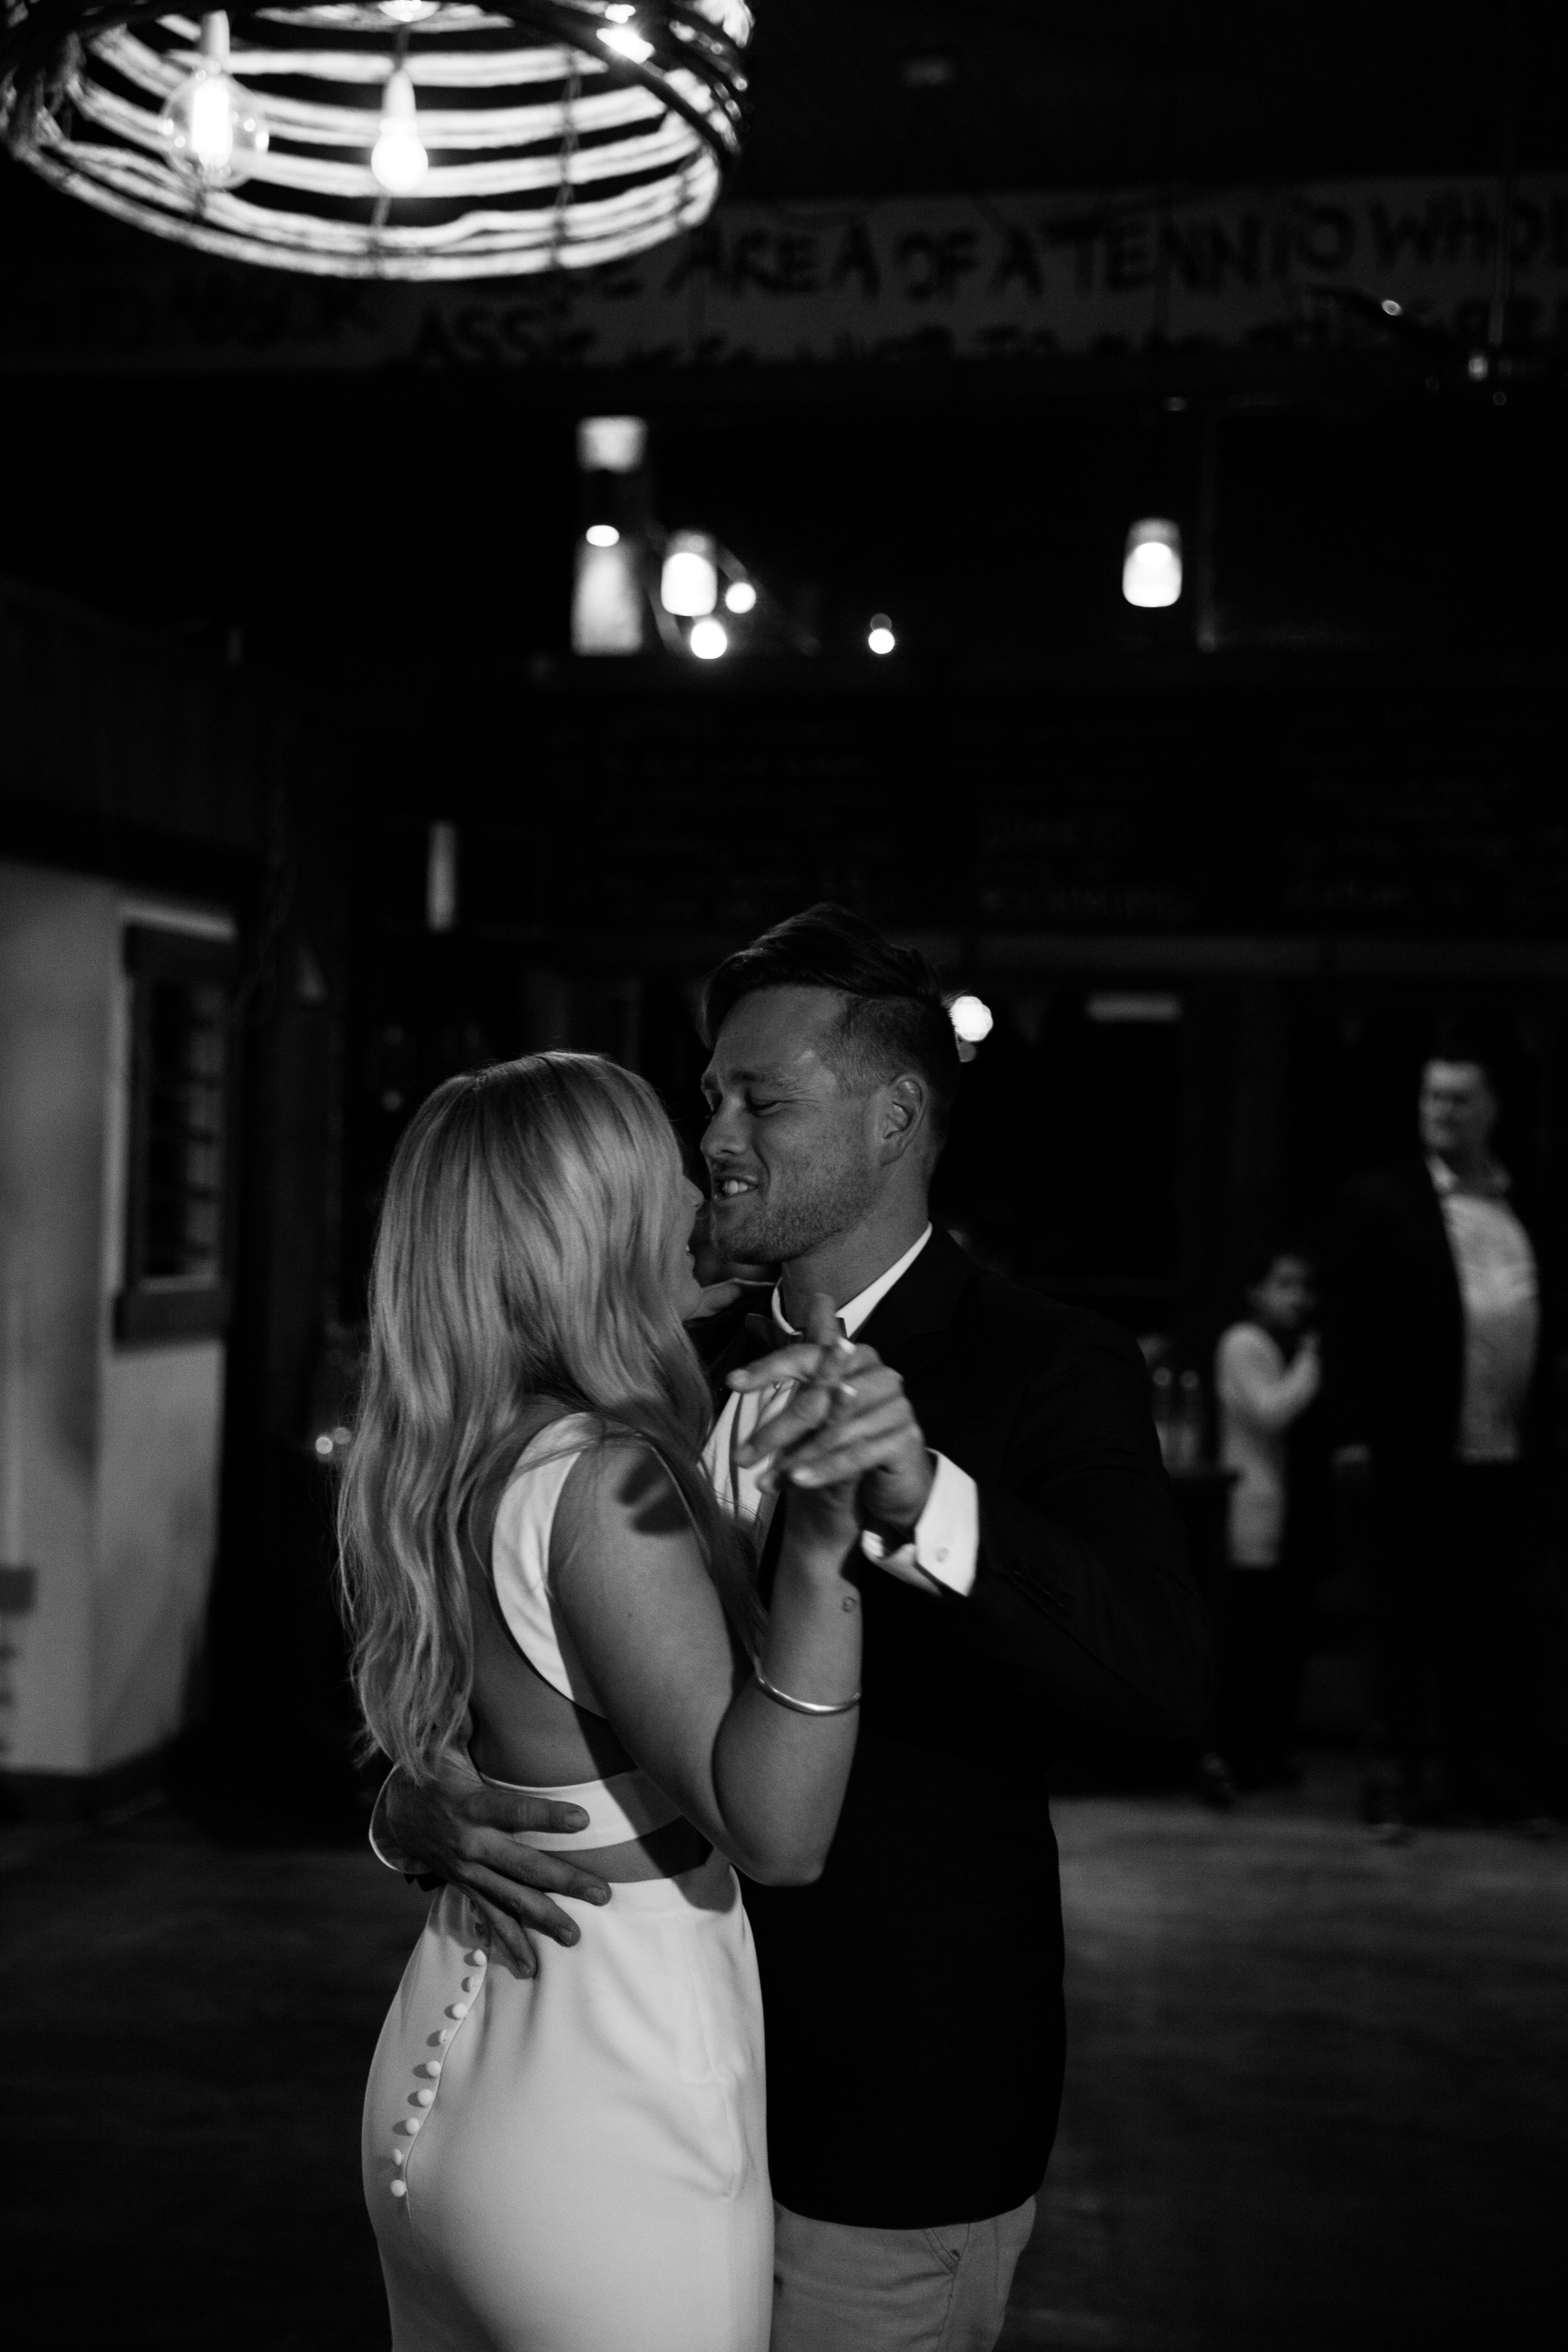 Geelong Wedding Photography | First Dance | The Farmers Place